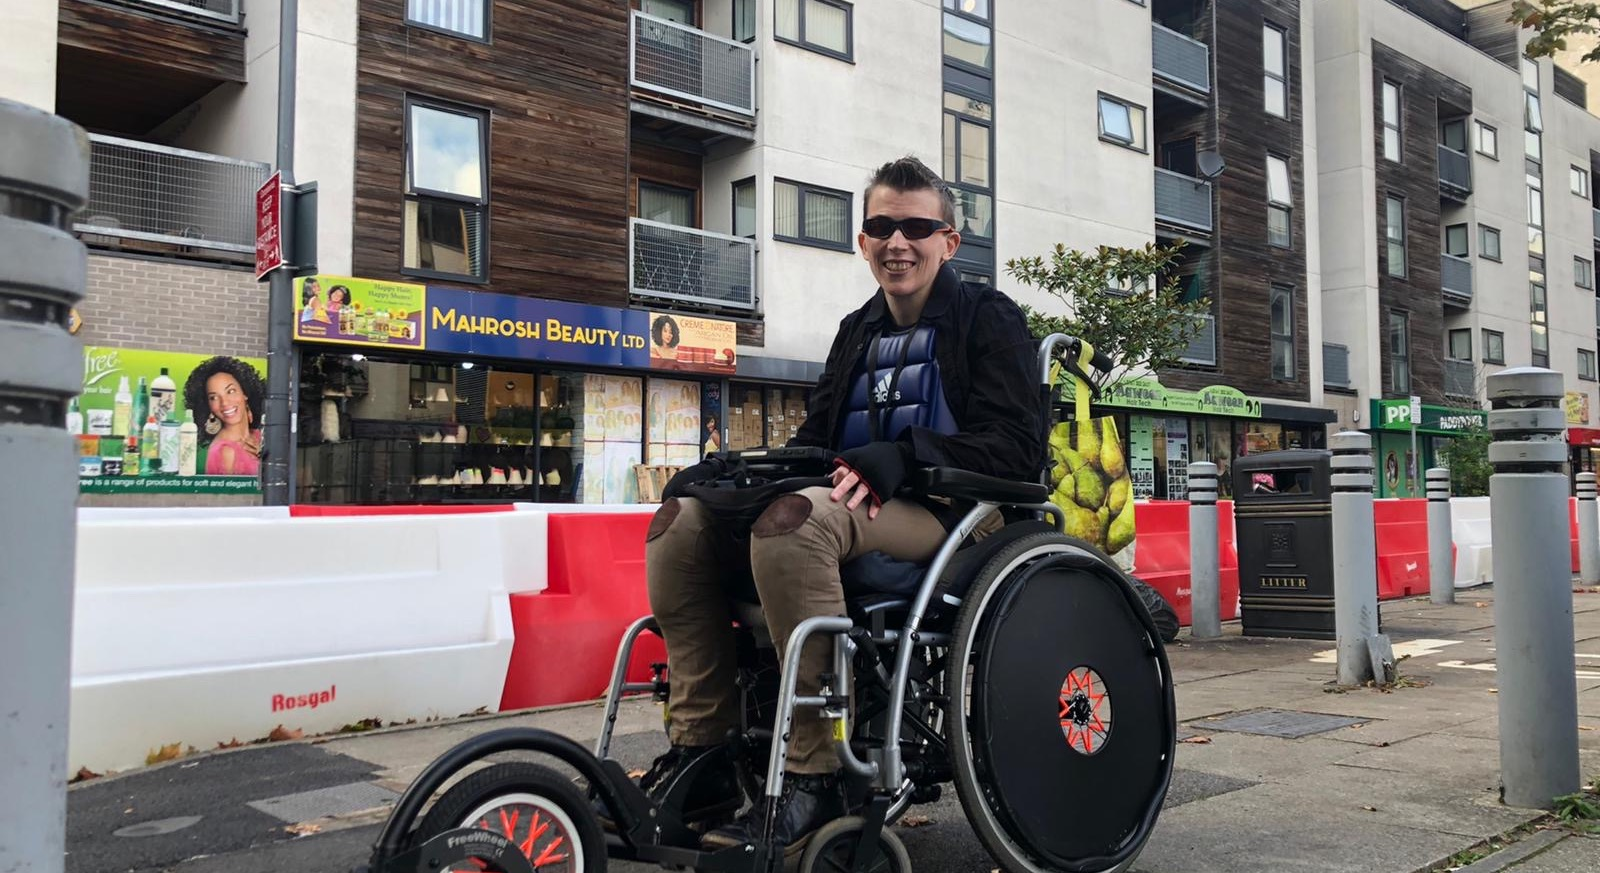 Finally the media are running with the cladding scandal, but one group is missing: disabled leaseholders